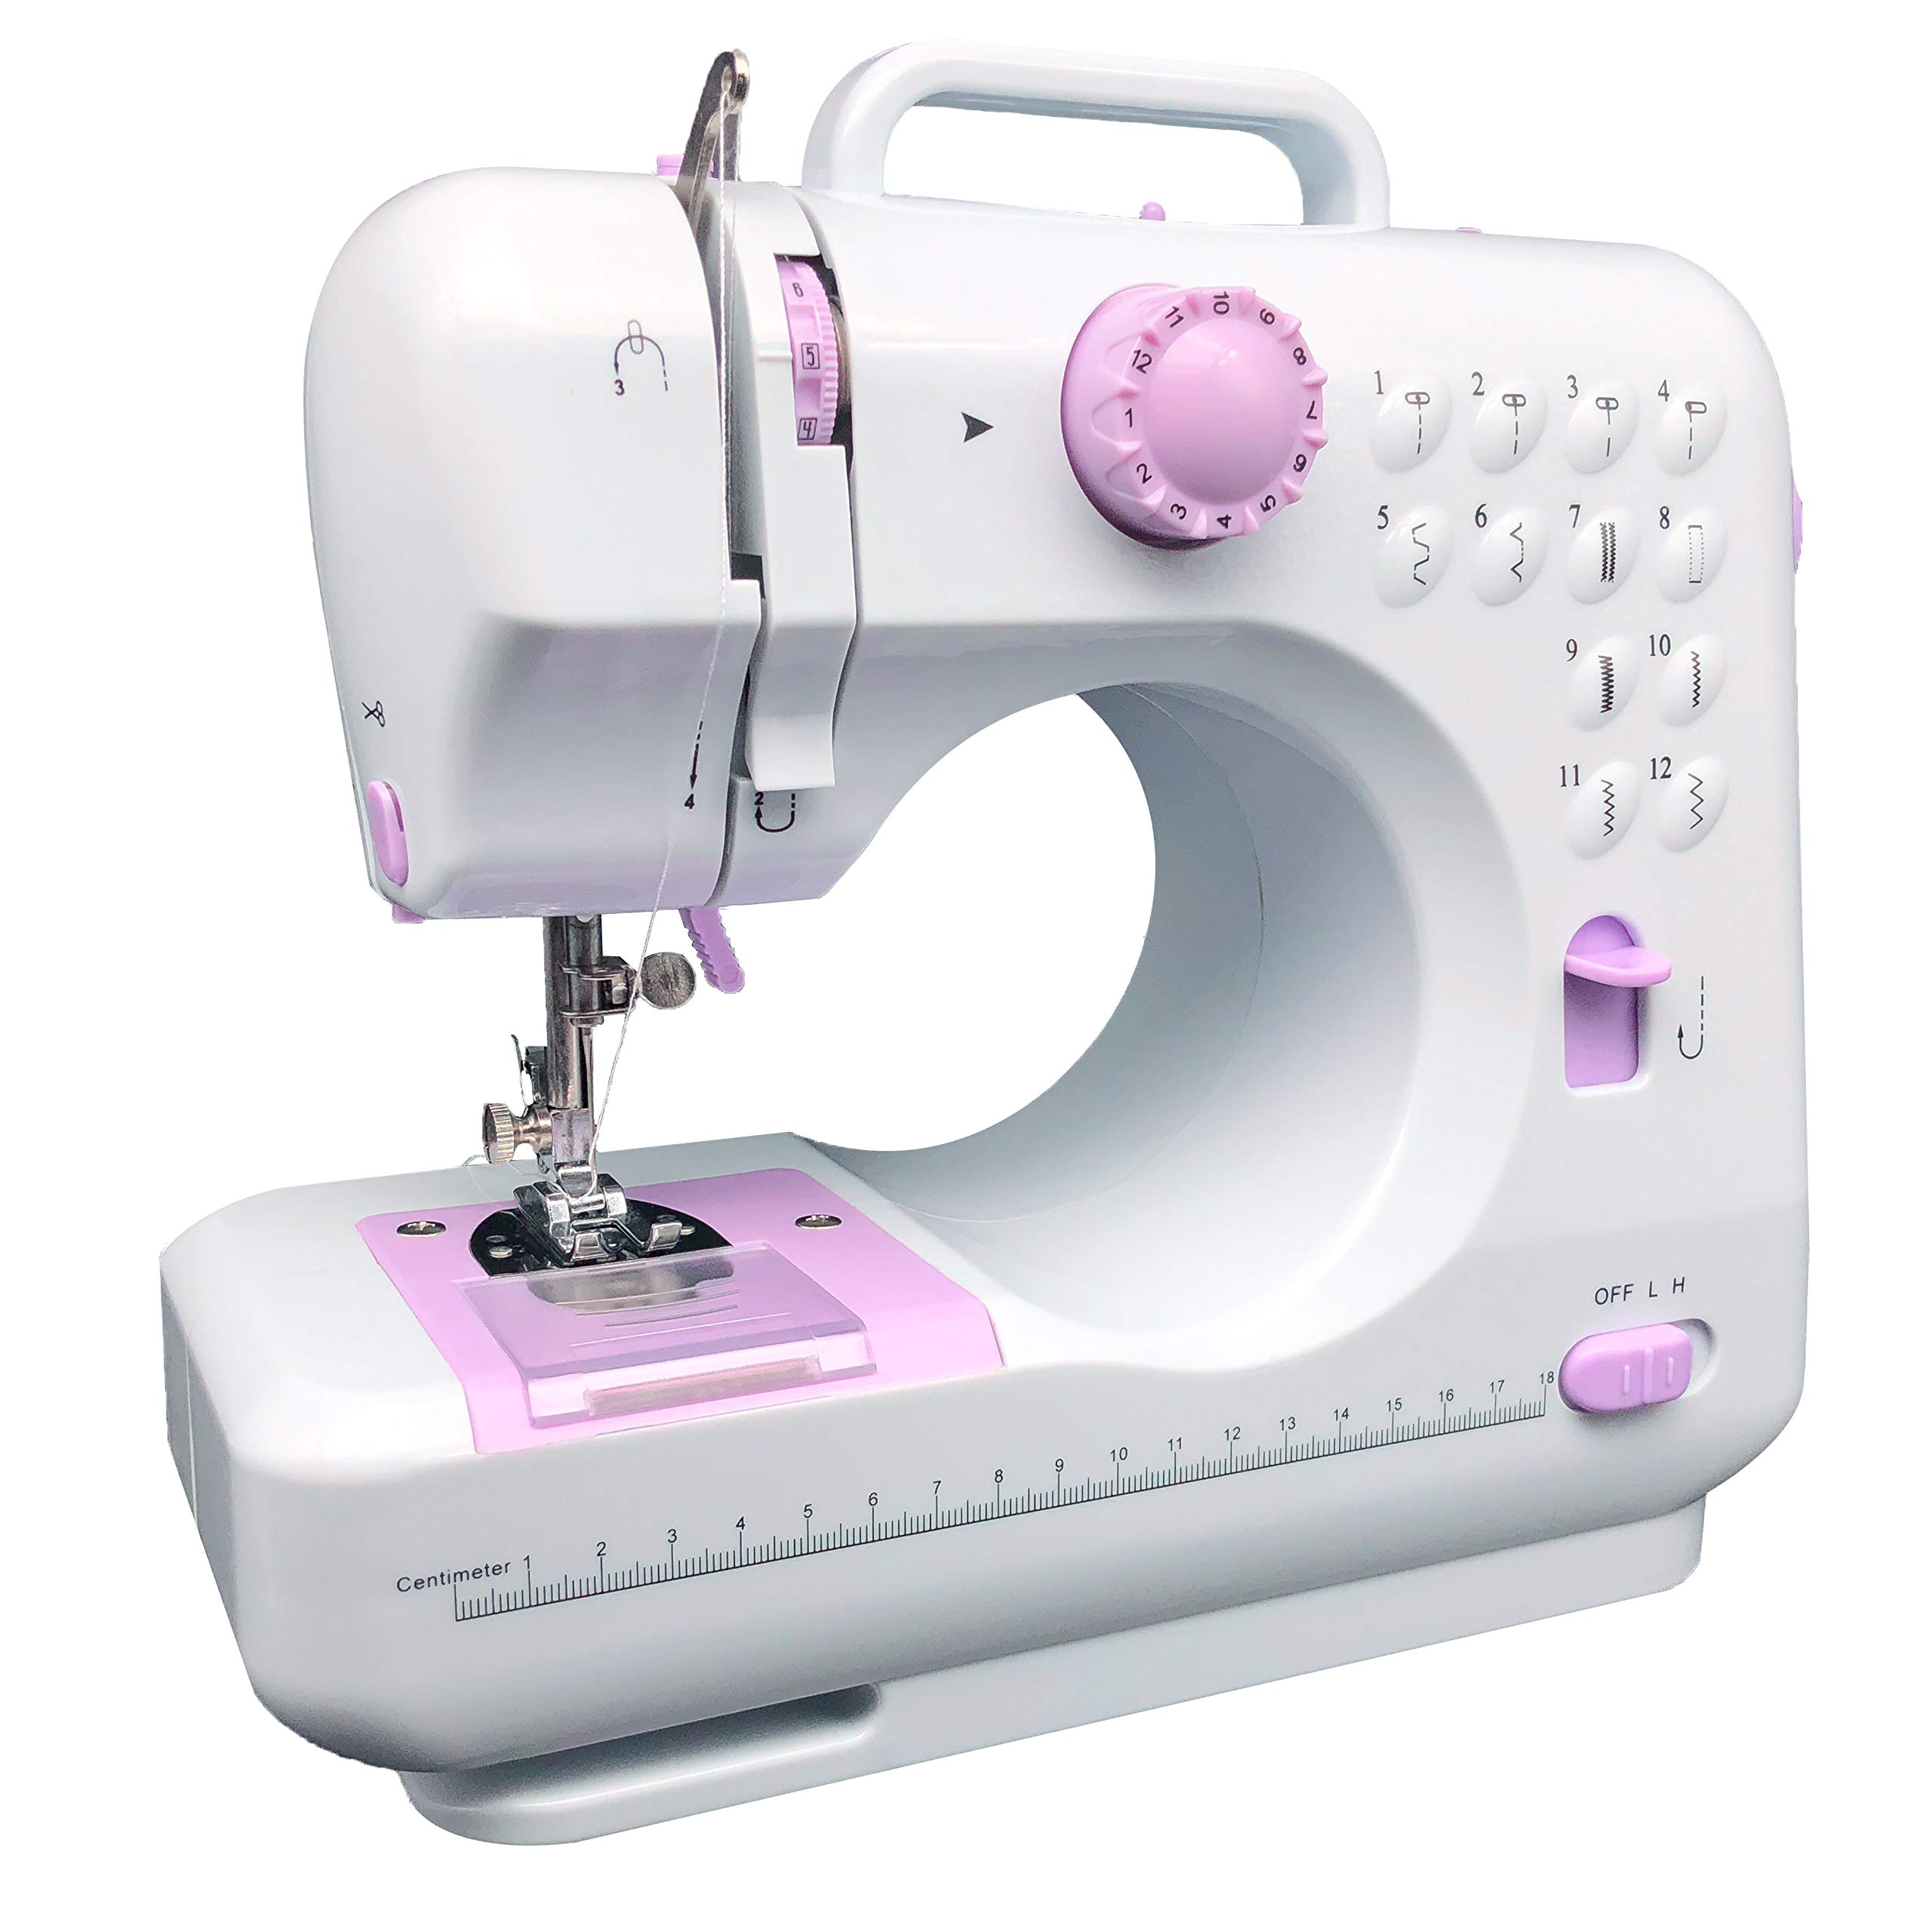 KPCB 505 Sewing Machine with 12 Stitches Mini Size with Backstitch Buttonholing by KPCB Tech